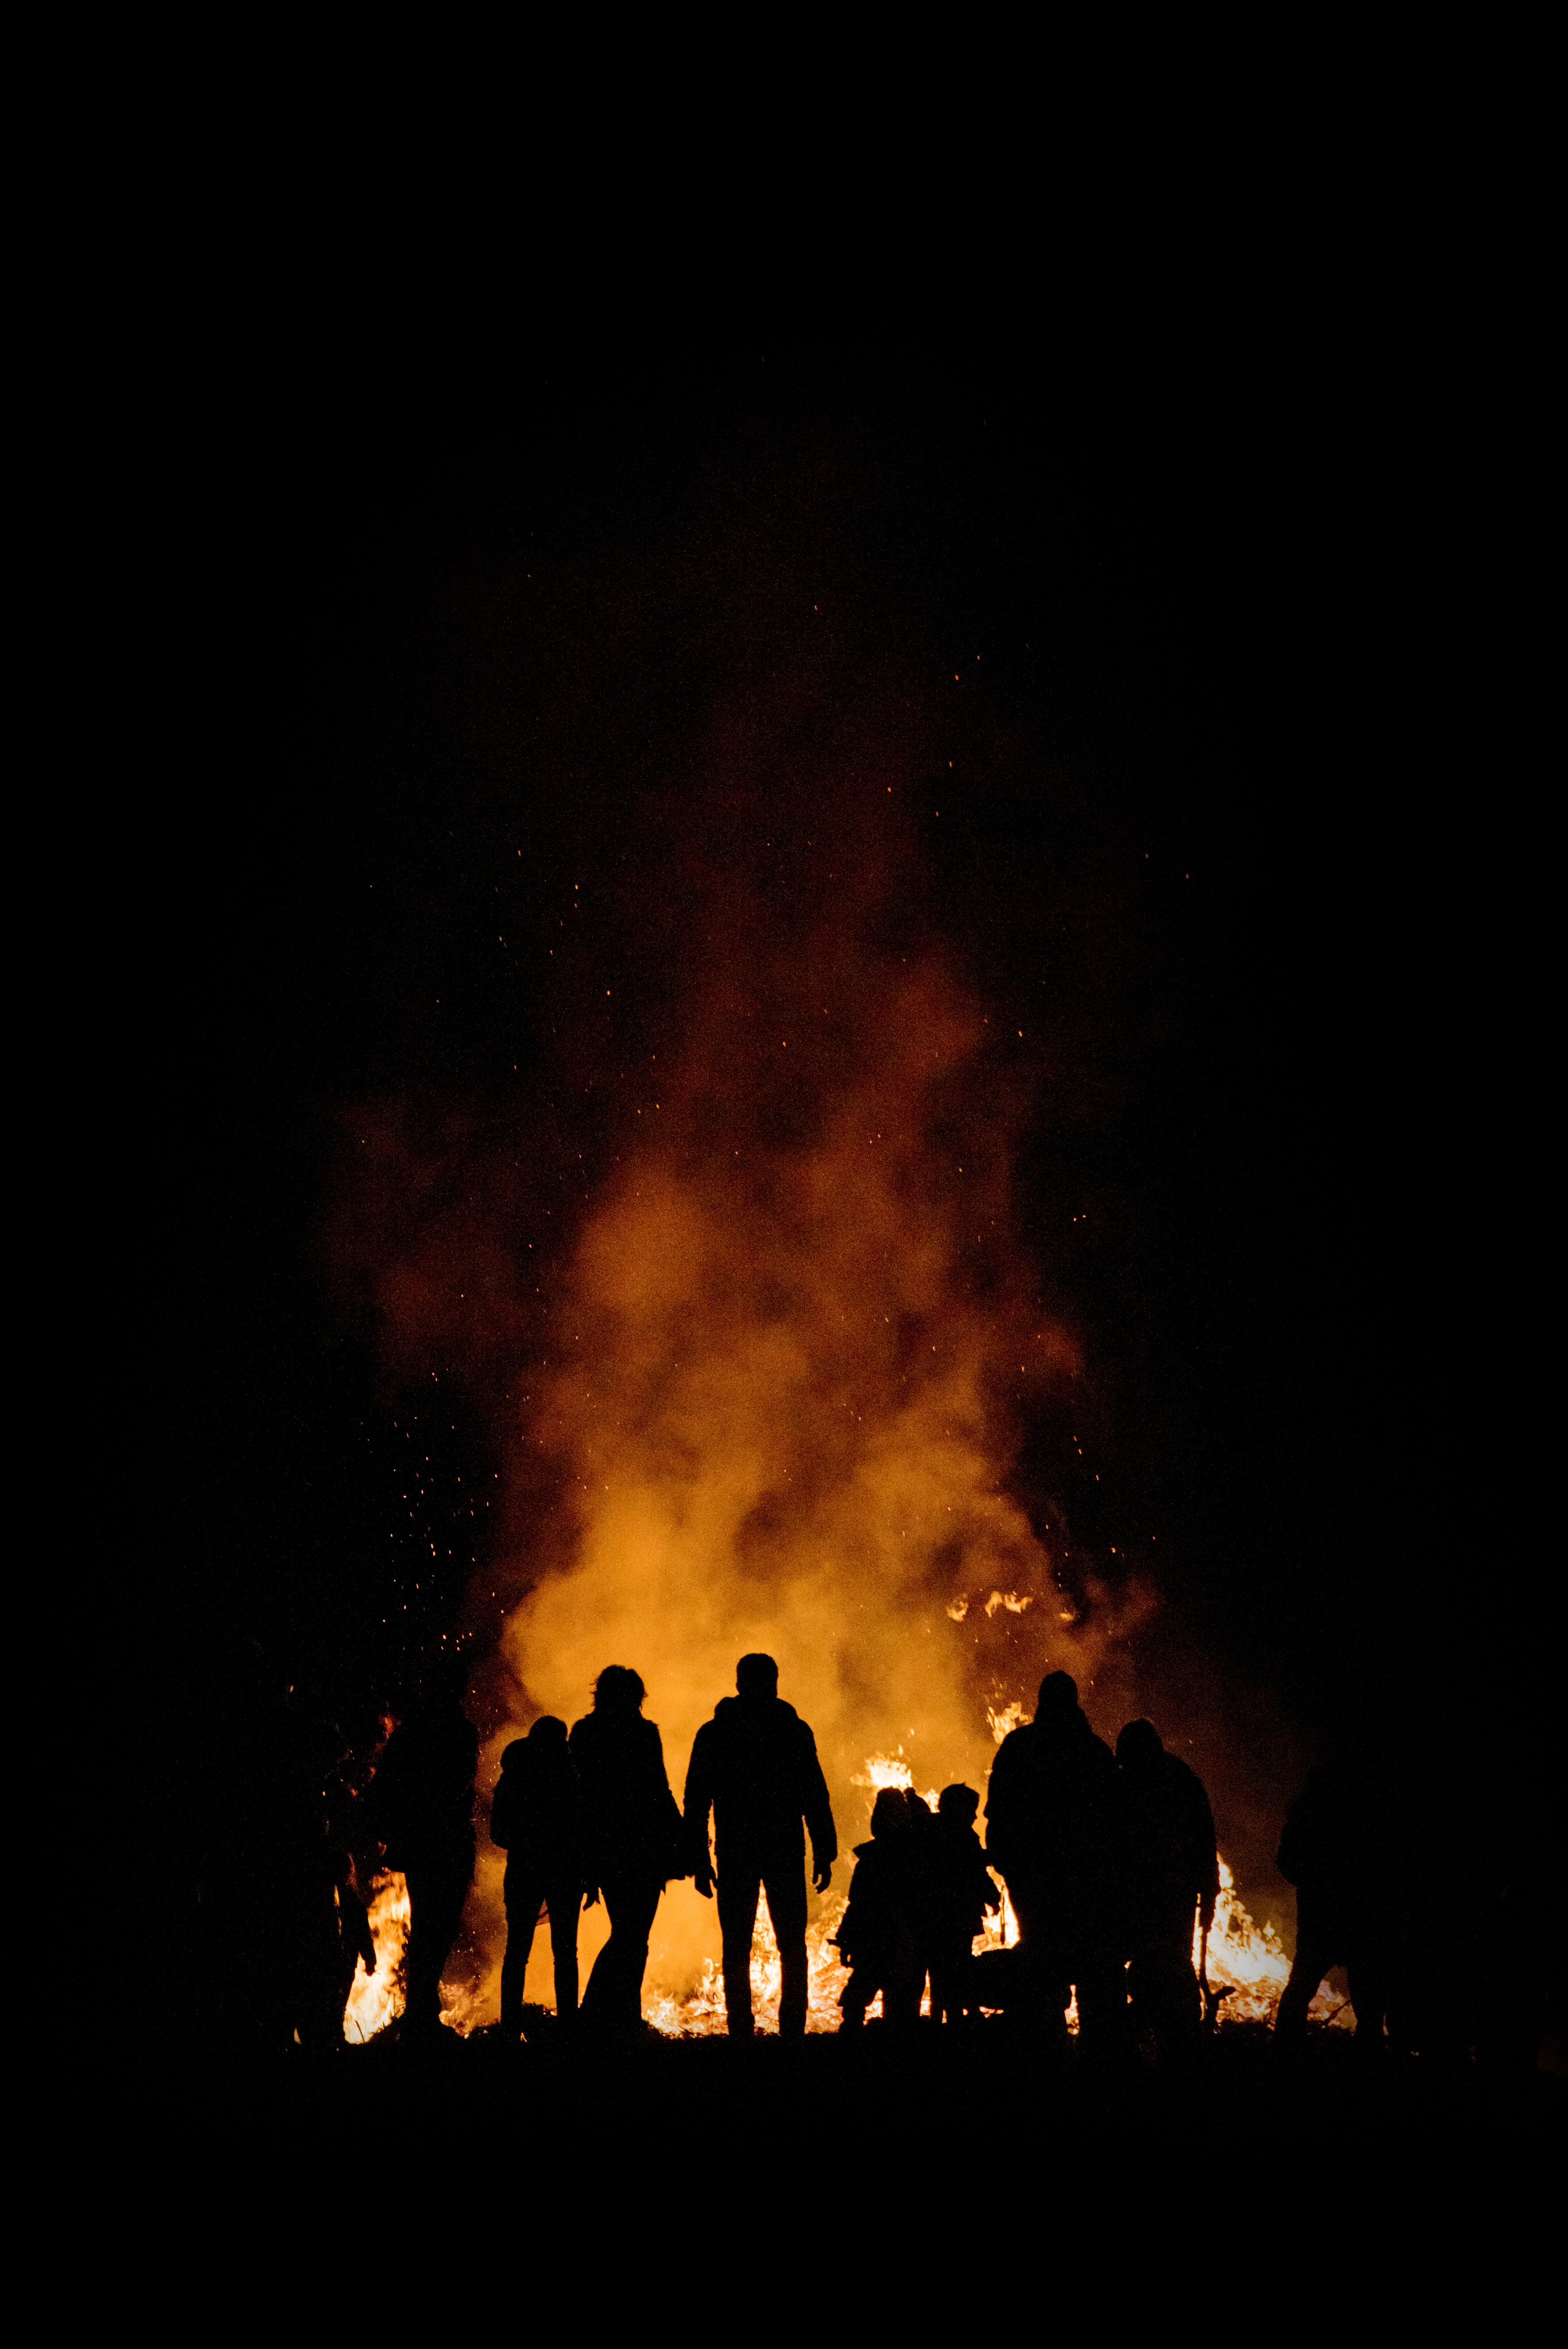 bonfire surrounded by people